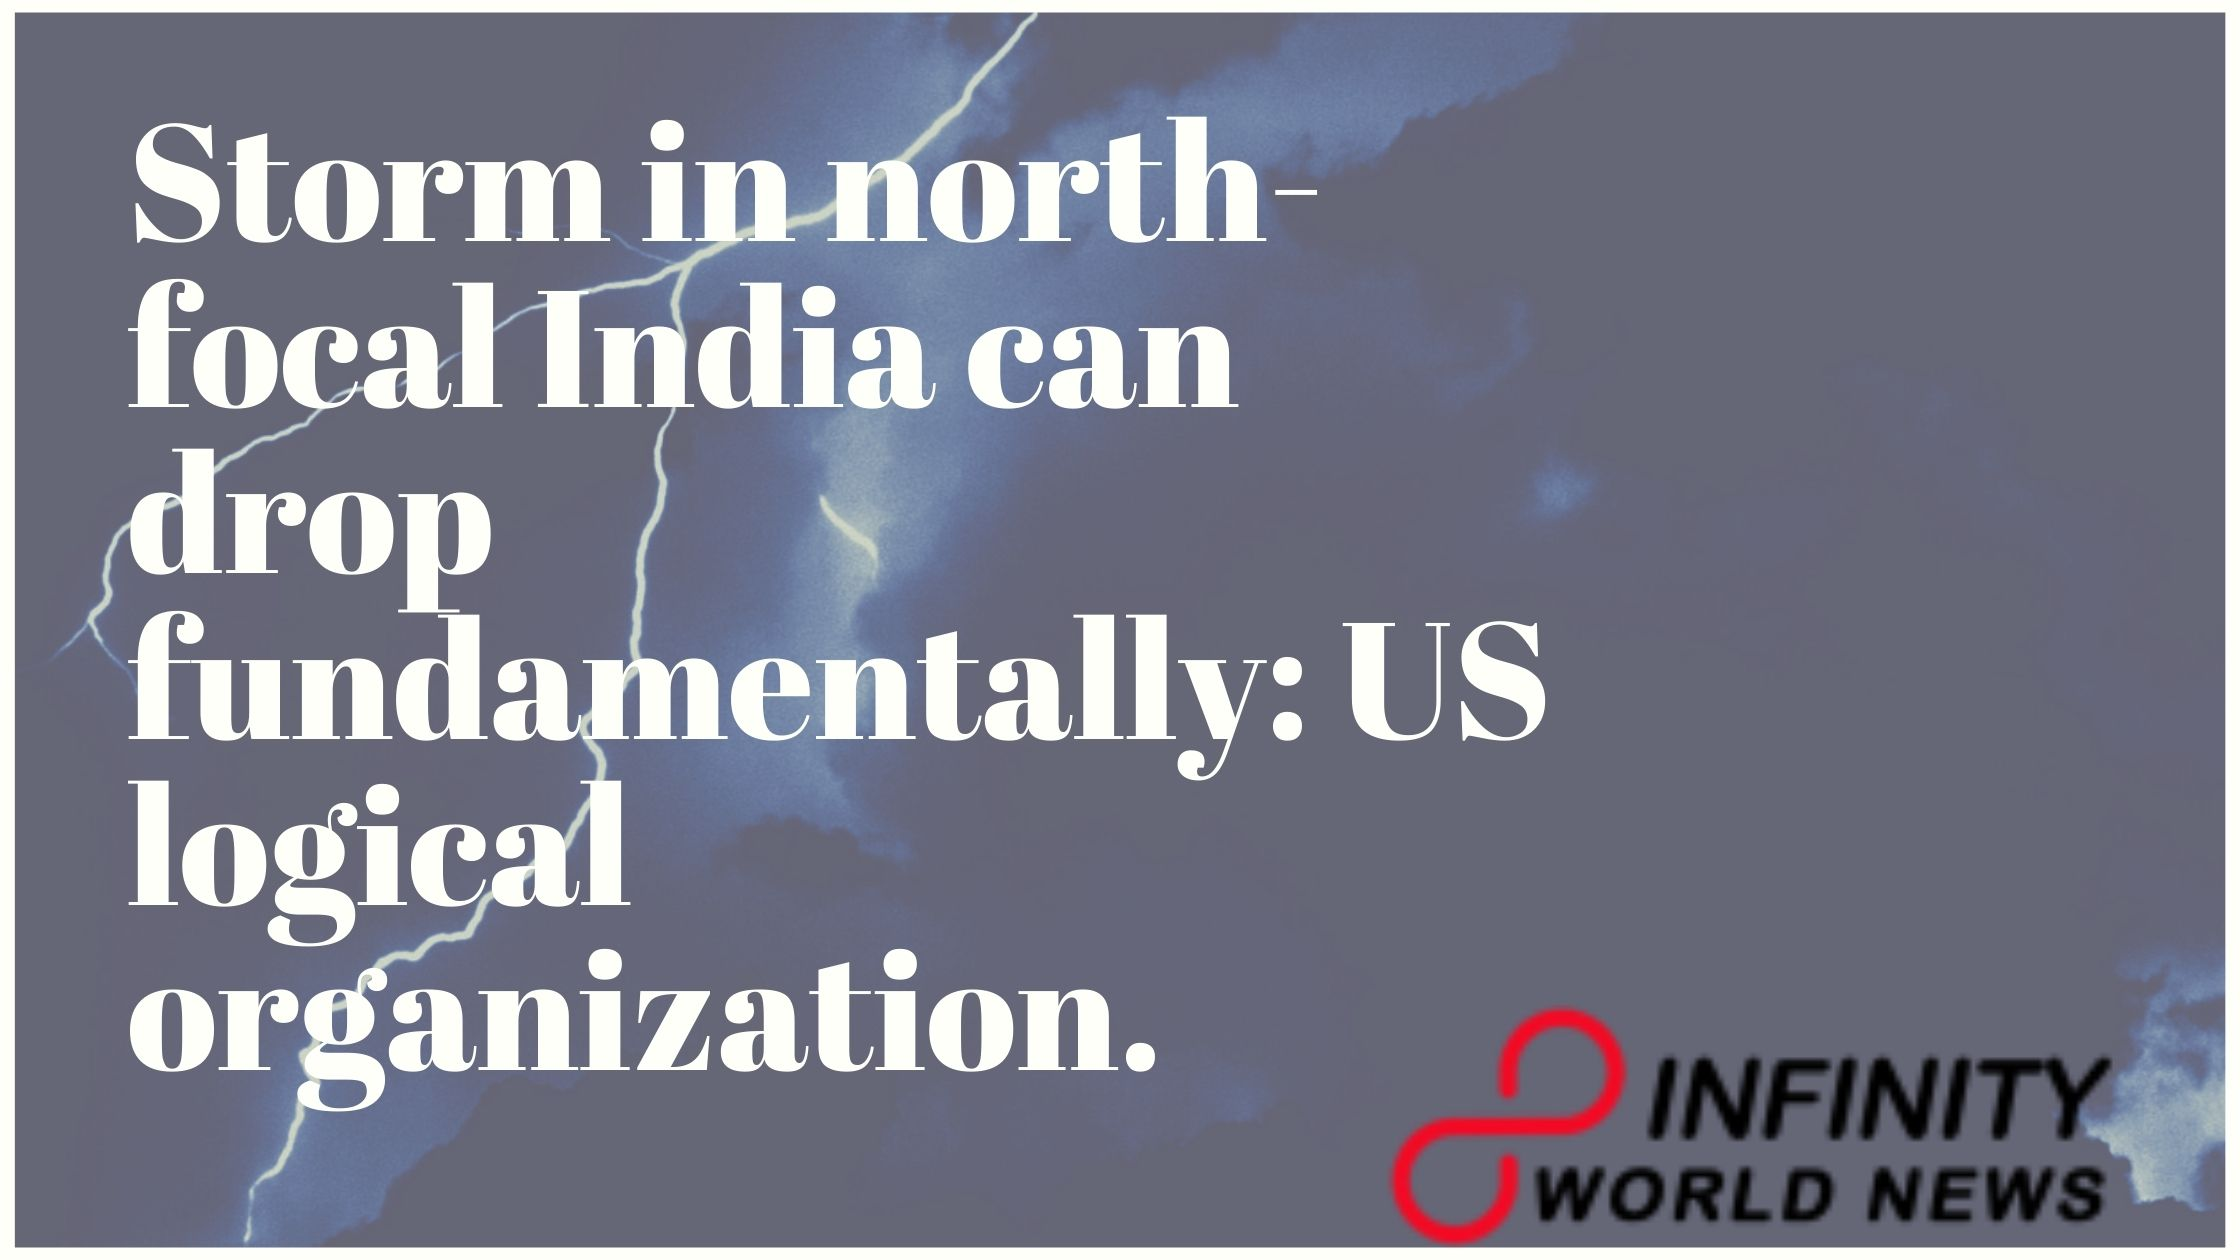 Storm in north-focal India can drop fundamentally_ US logical organization.